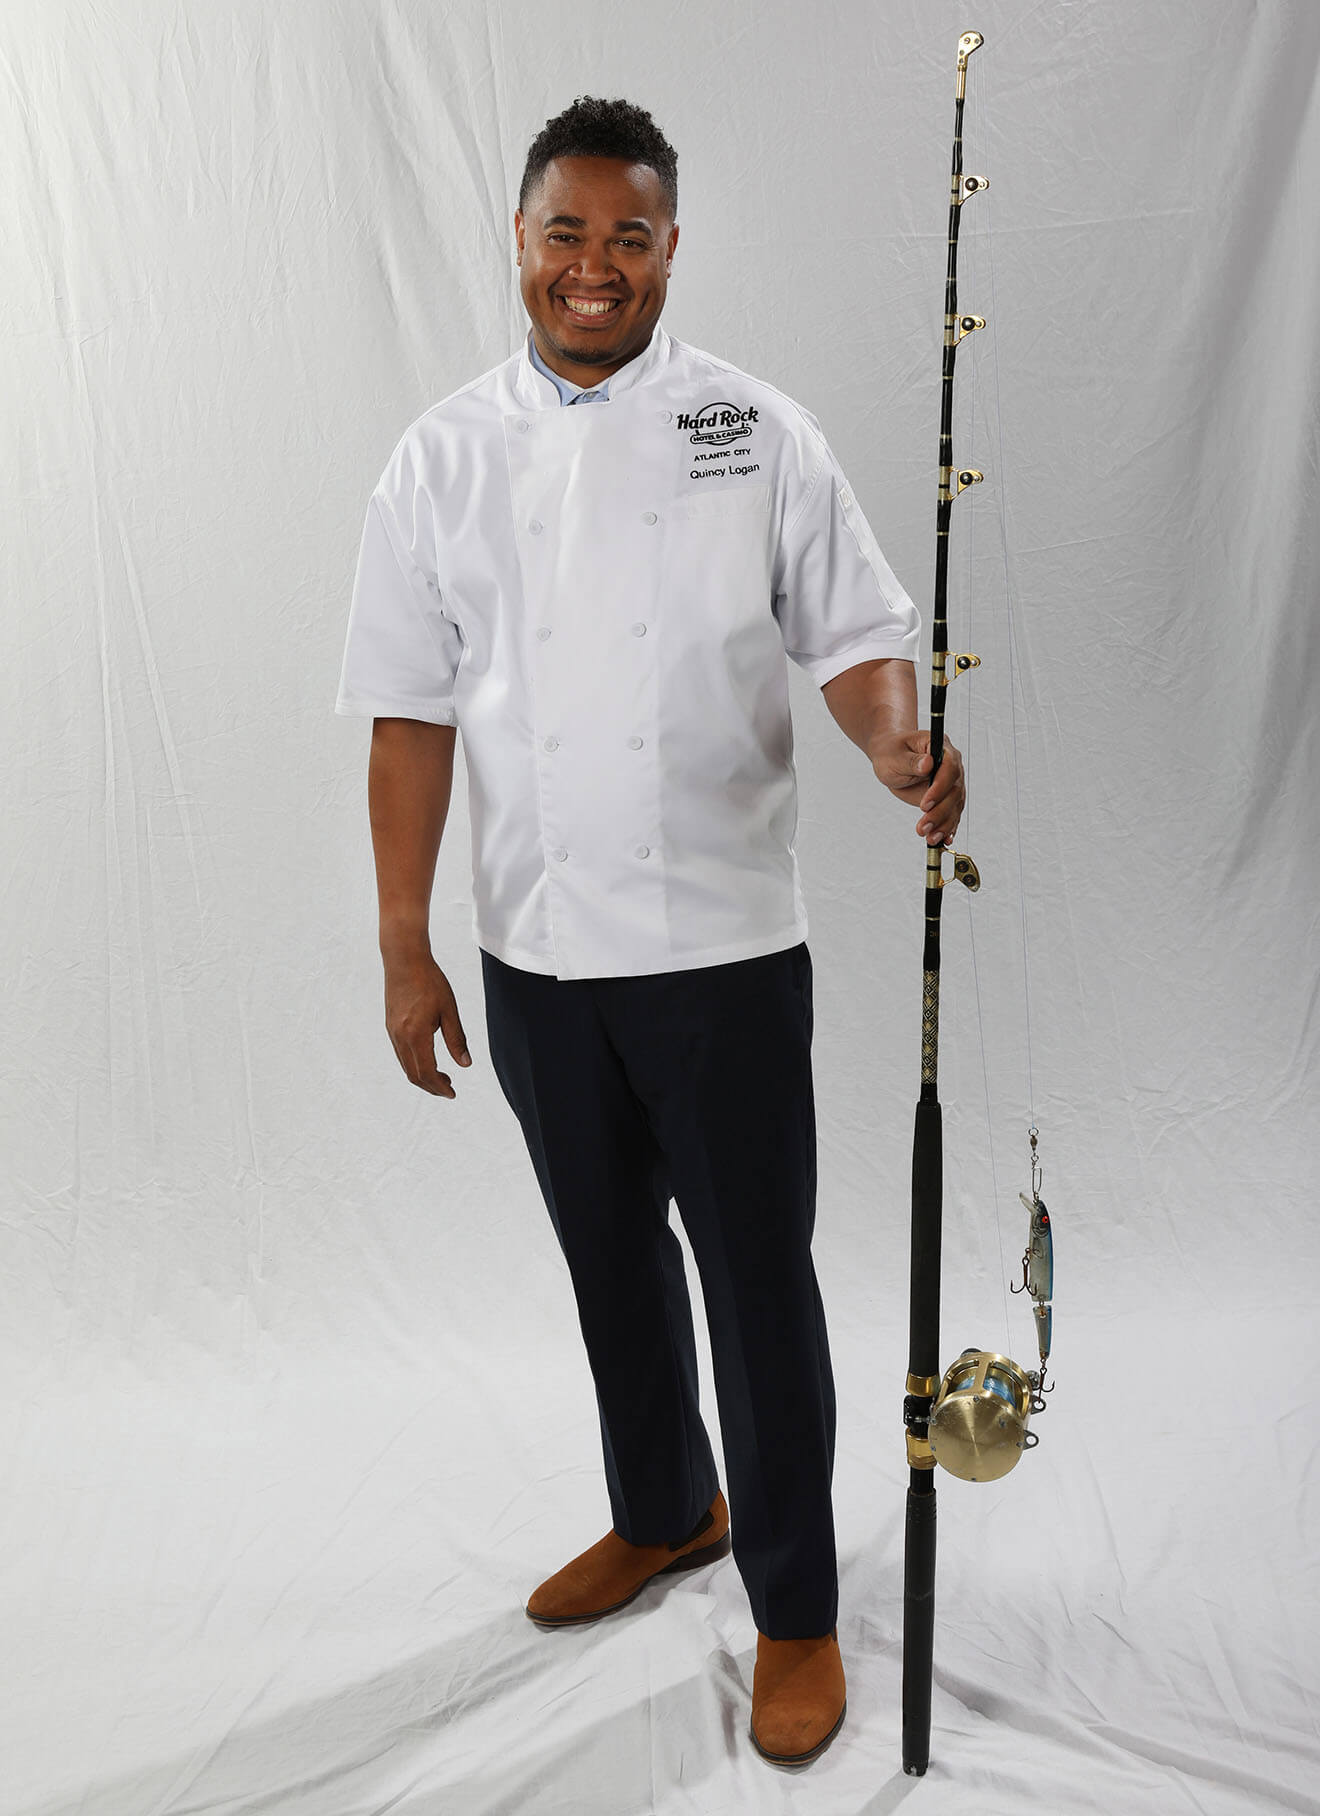 Chef Quincy Logan, fishing pole, light background